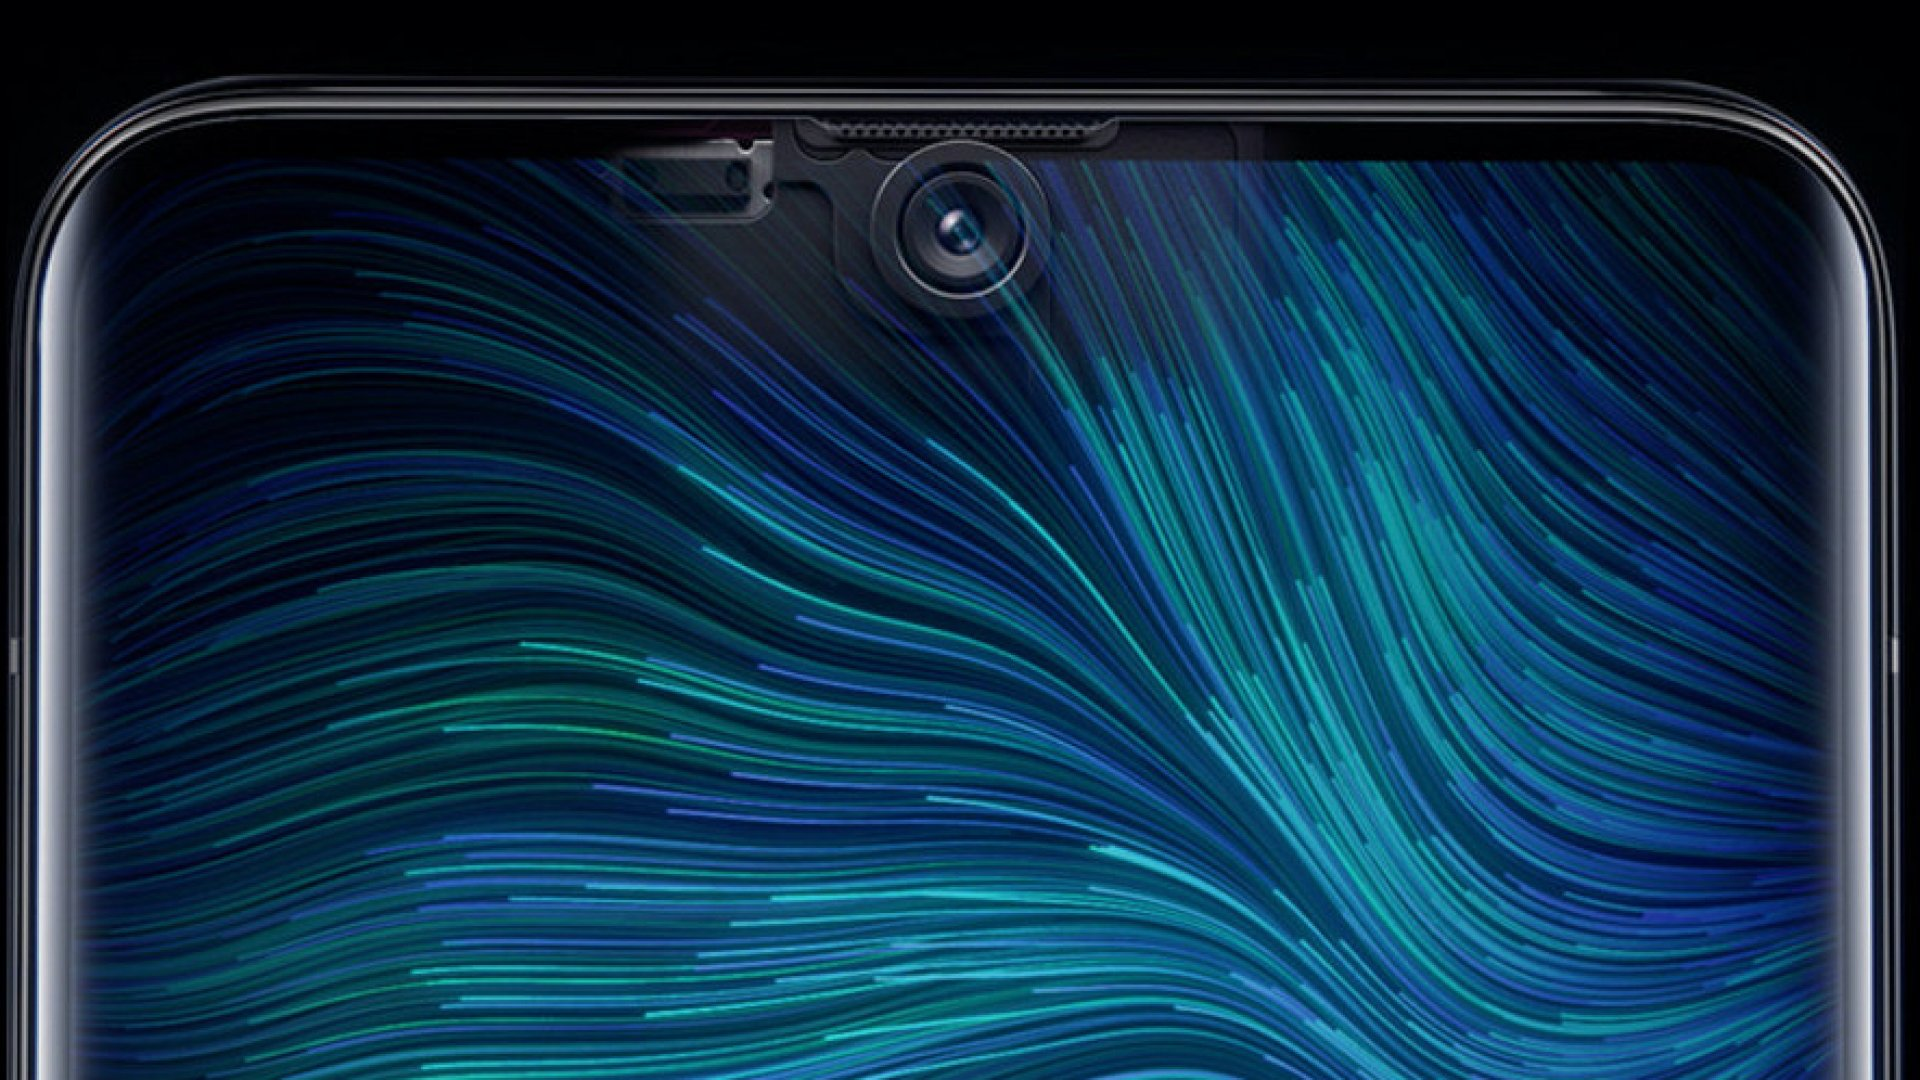 An Under-Screen Camera Is the Holy Grail of Smartphone Design and It's About to Become a Thing